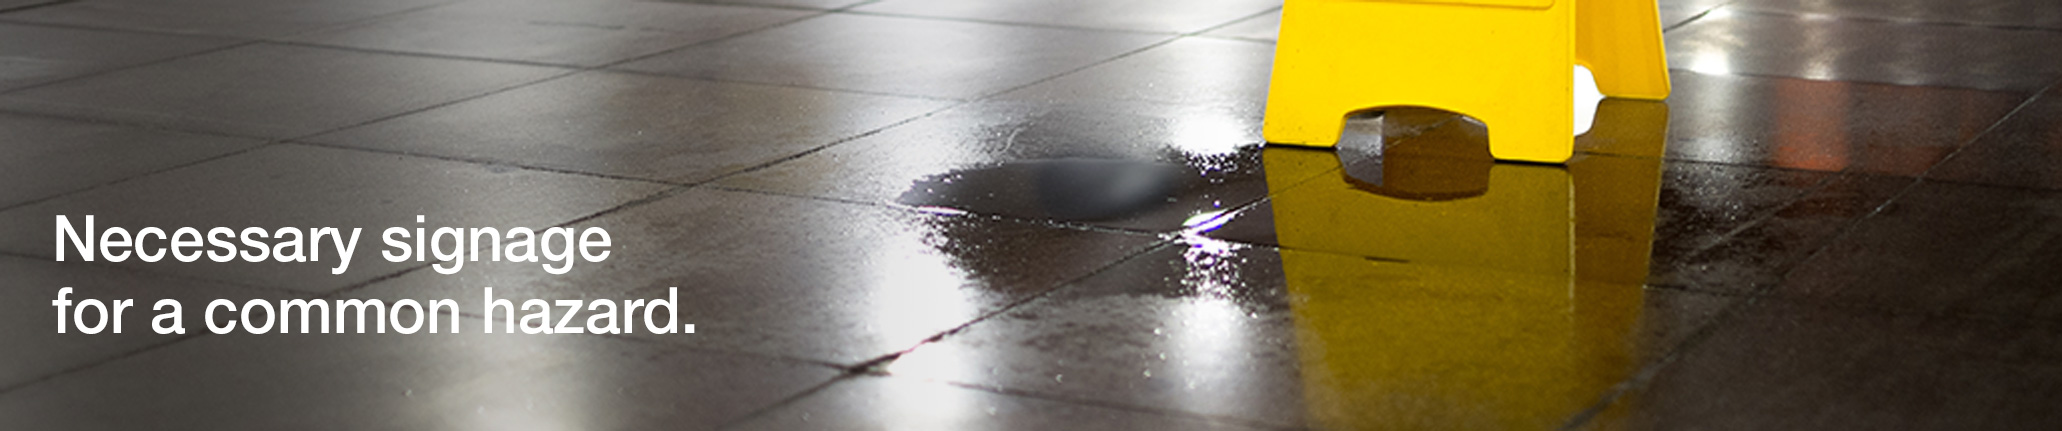 Wet Floor Signs. Neccesary signage for a common hazard.